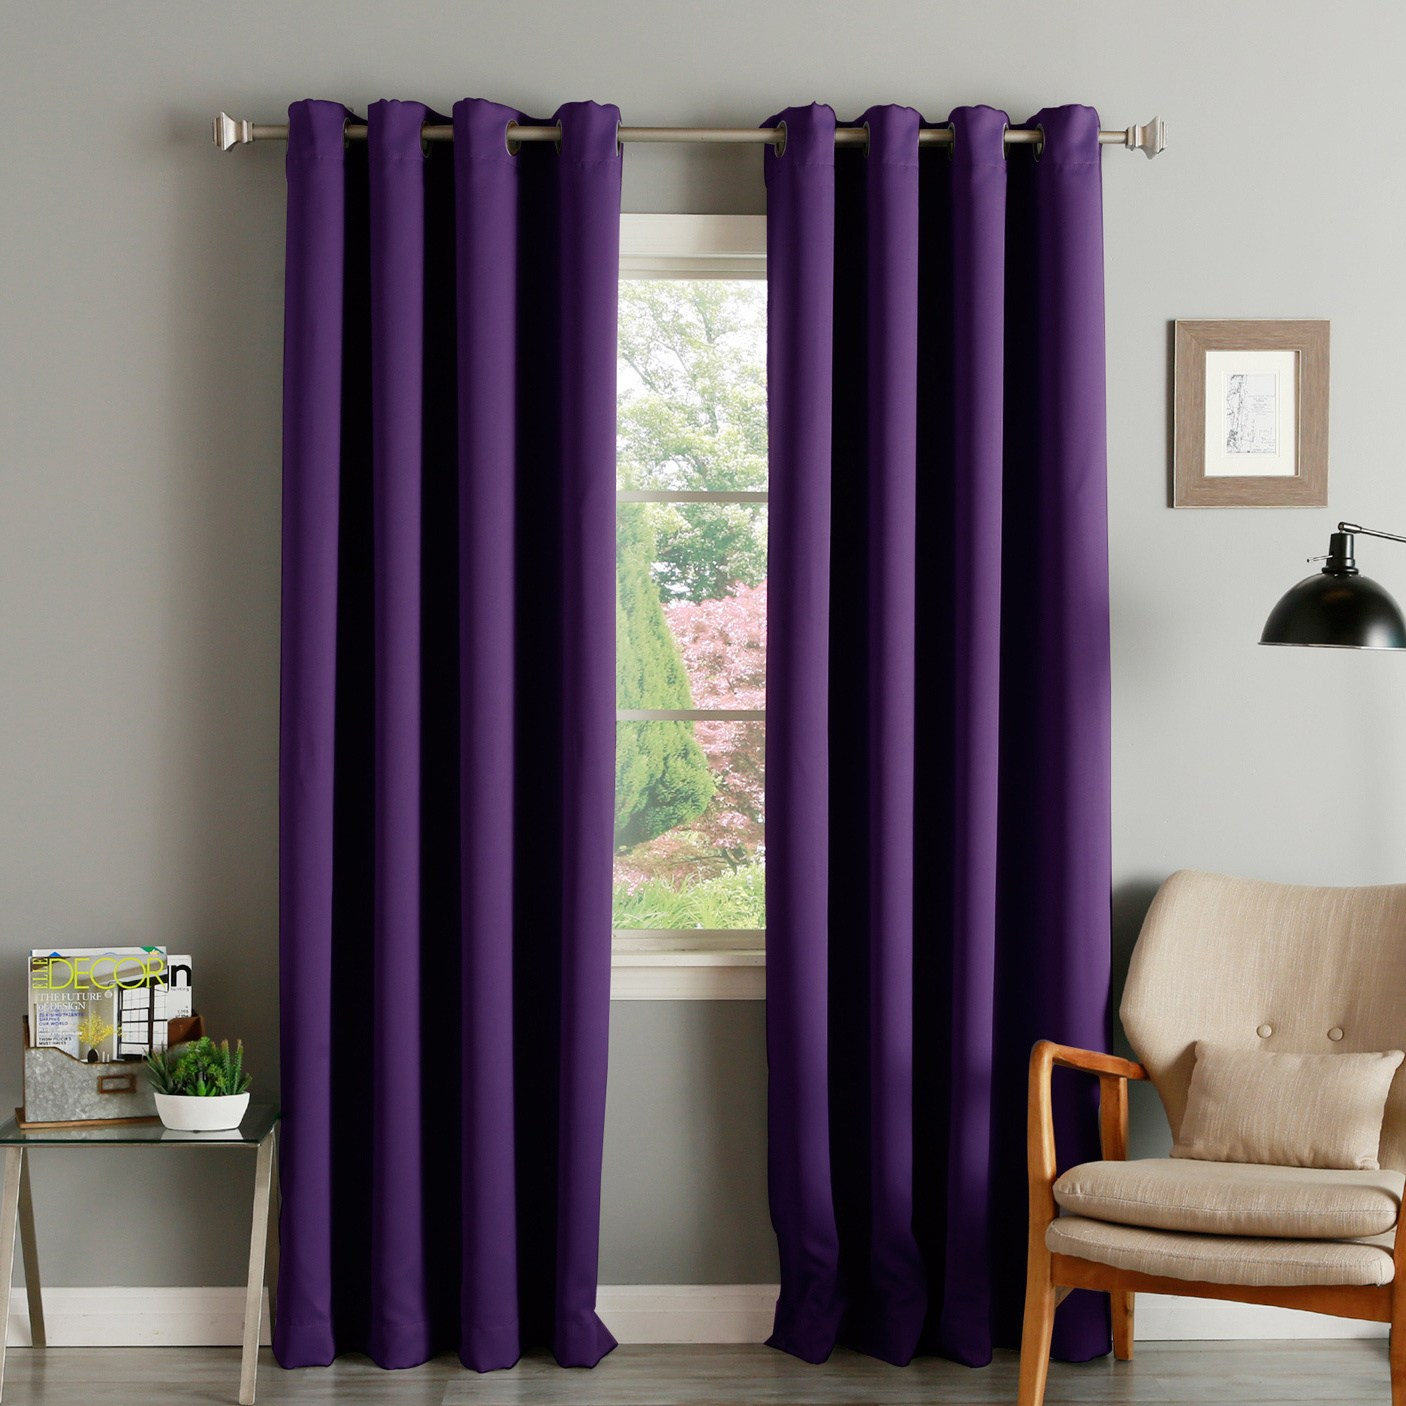 purple curtains aurora home thermal insulated blackout grommet top 84-inch curtain panel SUZVUOZ